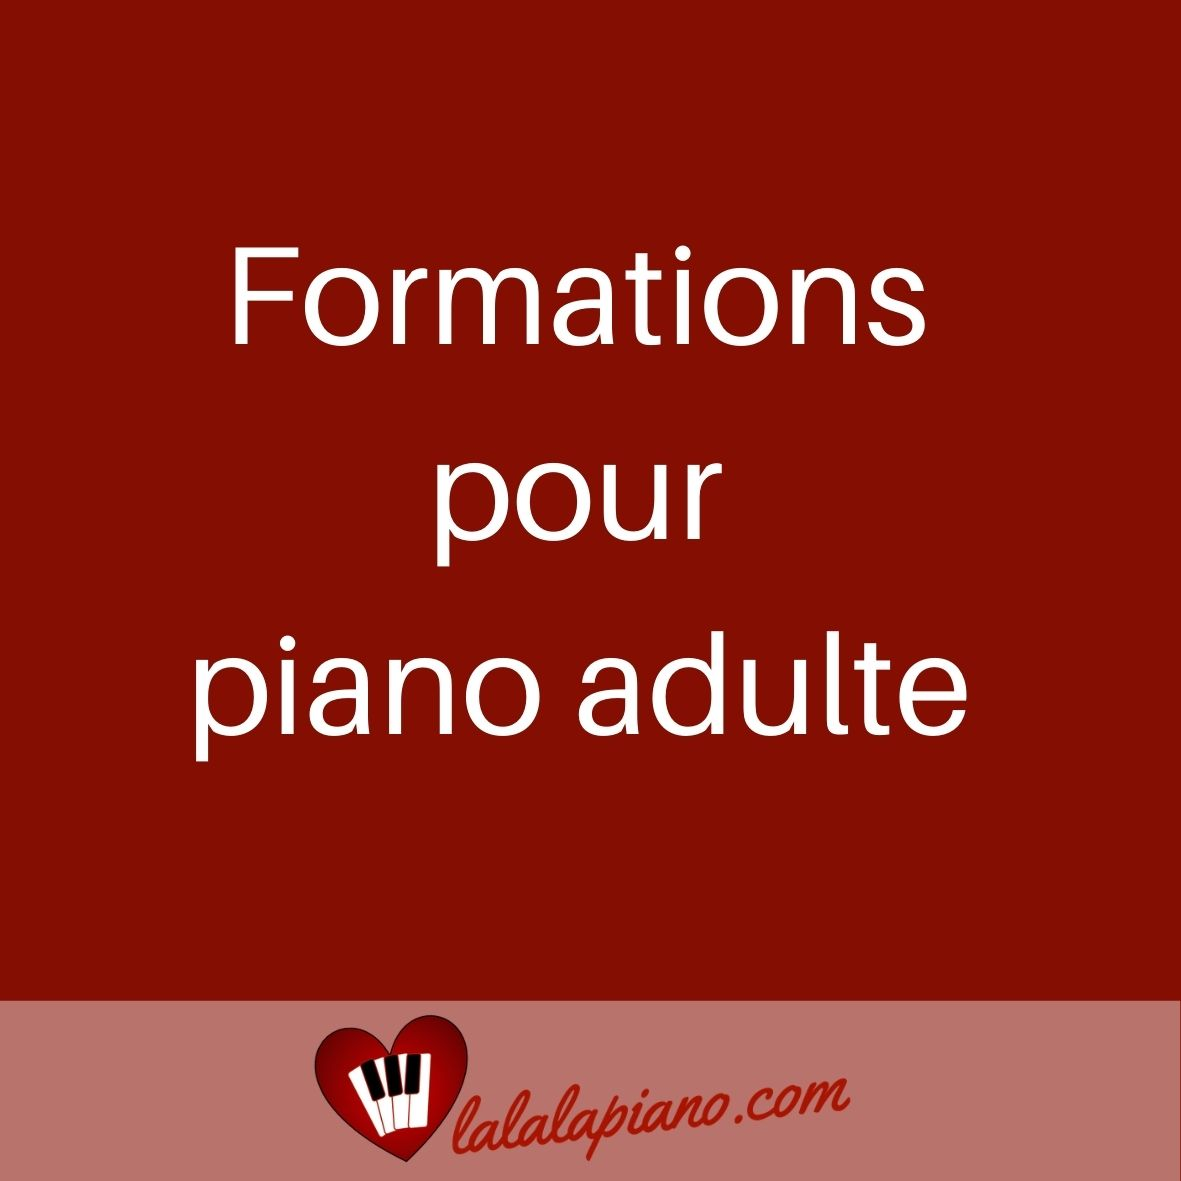 formations pour piano adulte